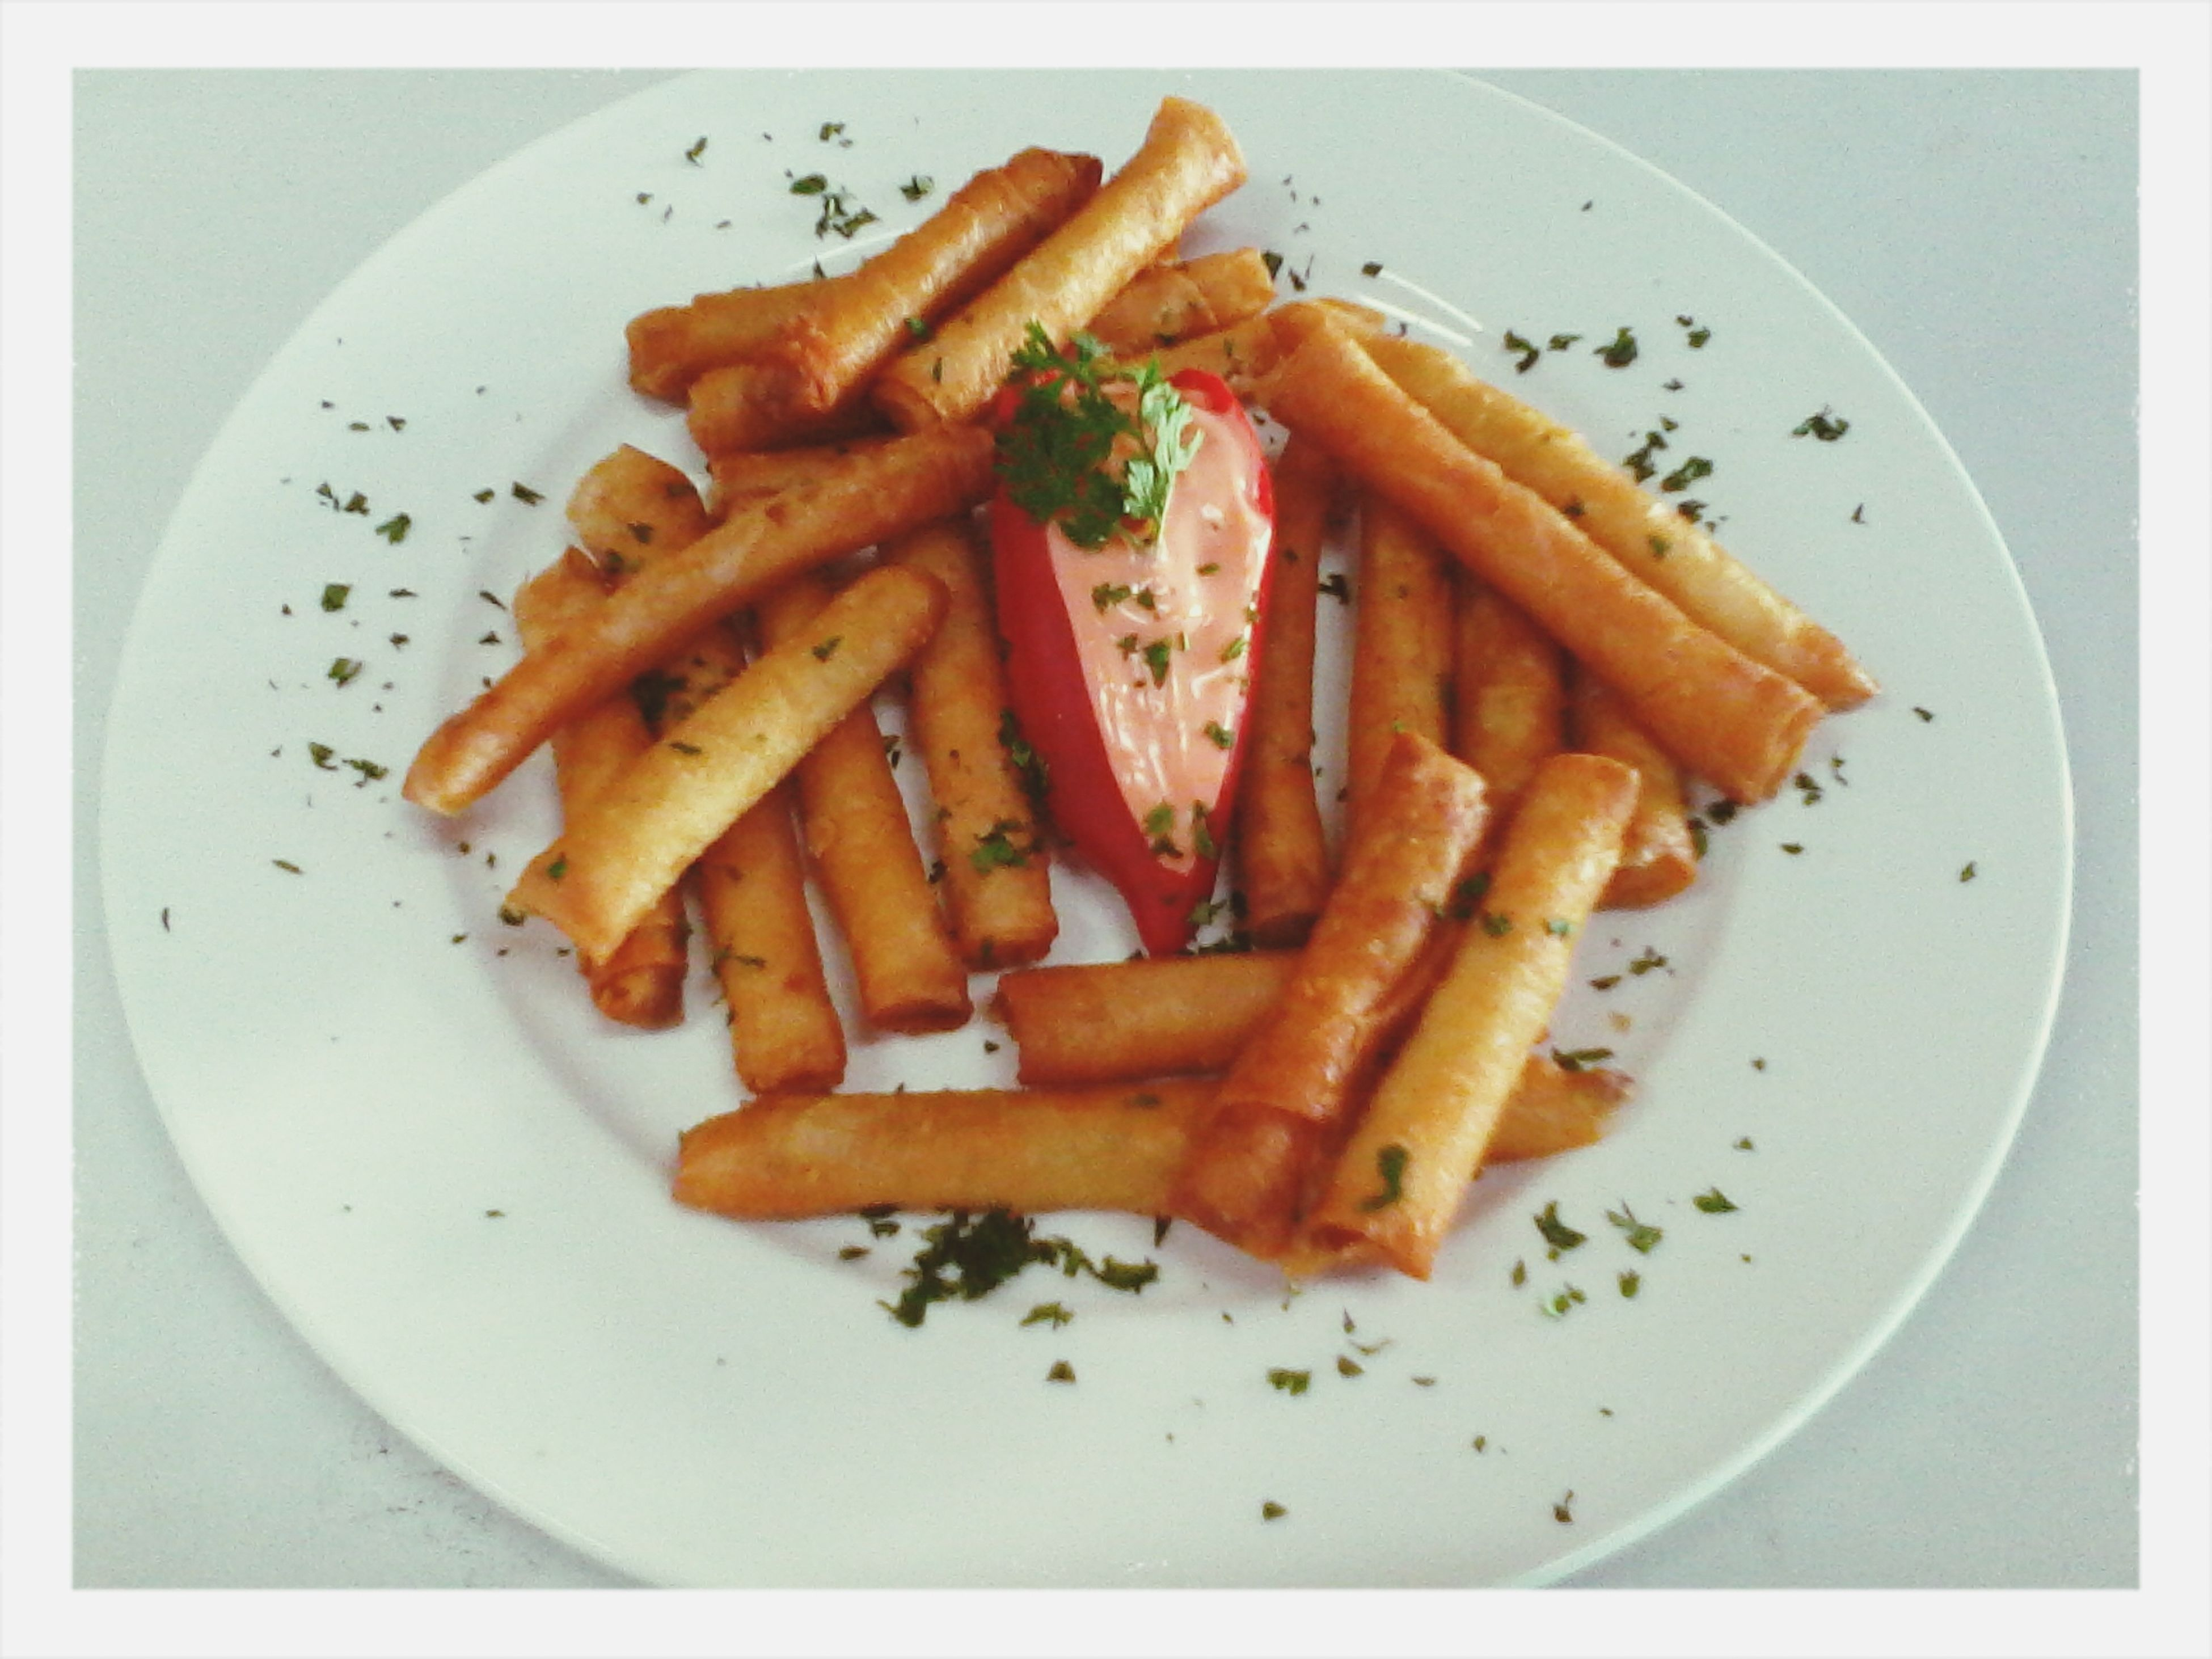 food, food and drink, plate, ready-to-eat, indoors, freshness, close-up, serving size, meal, still life, meat, table, indulgence, healthy eating, high angle view, french fries, cooked, prepared potato, fried